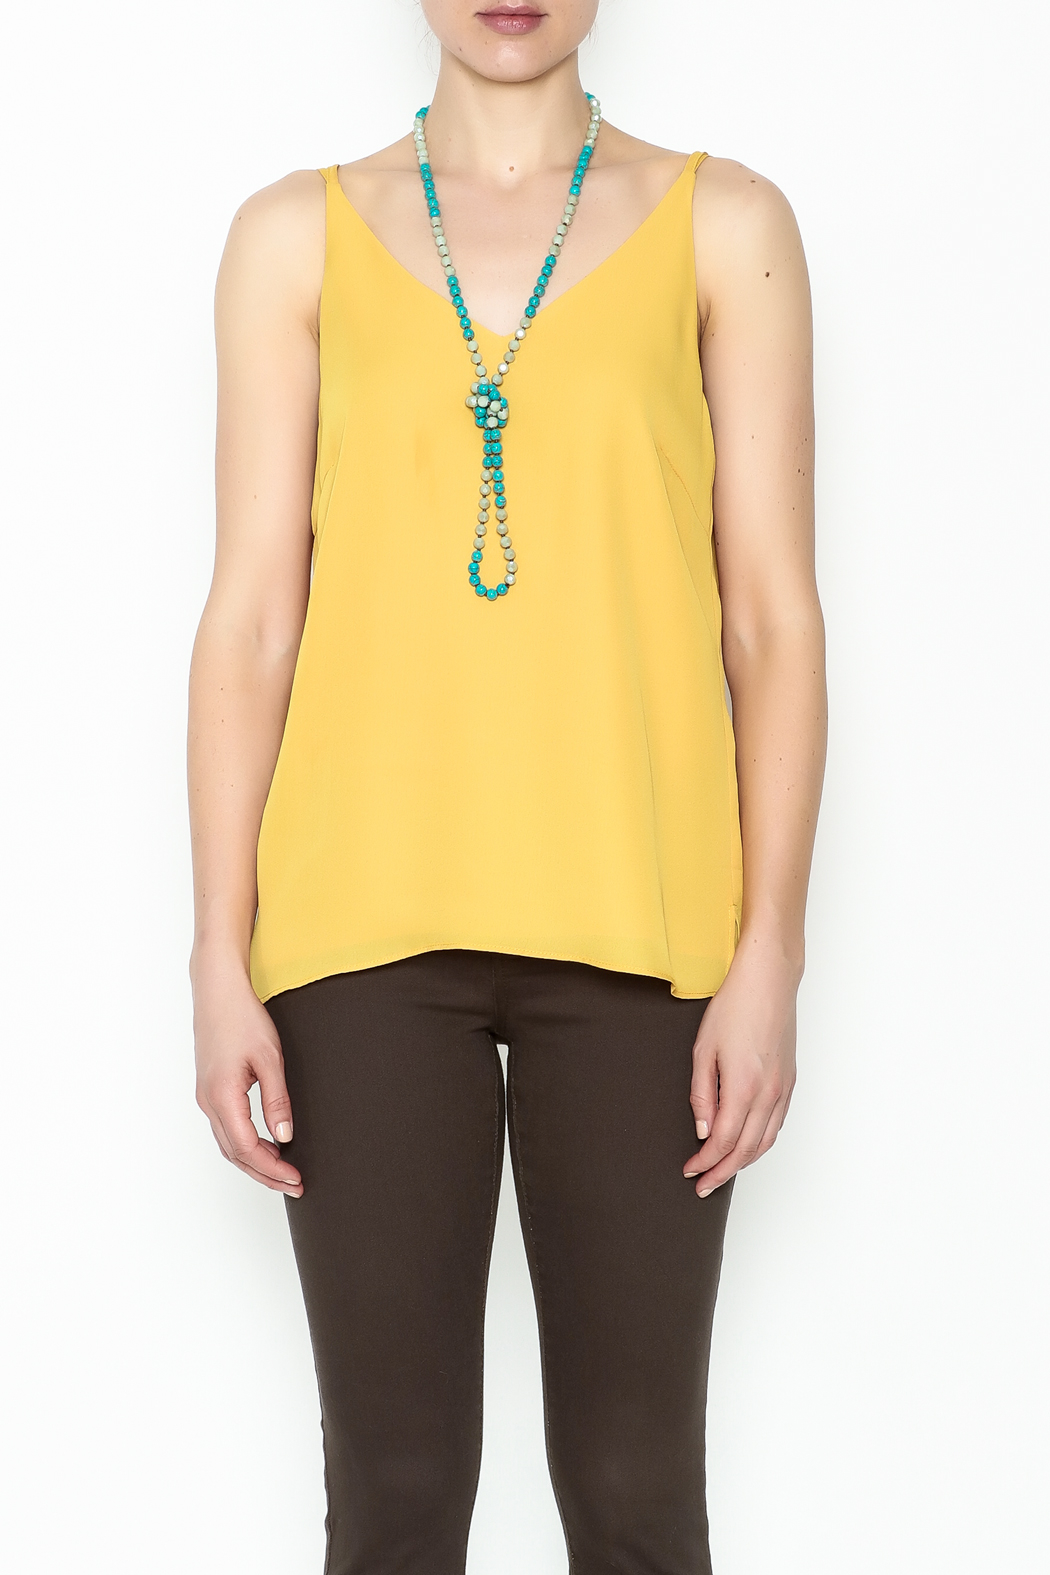 HYFVE Double Strap Top - Front Full Image